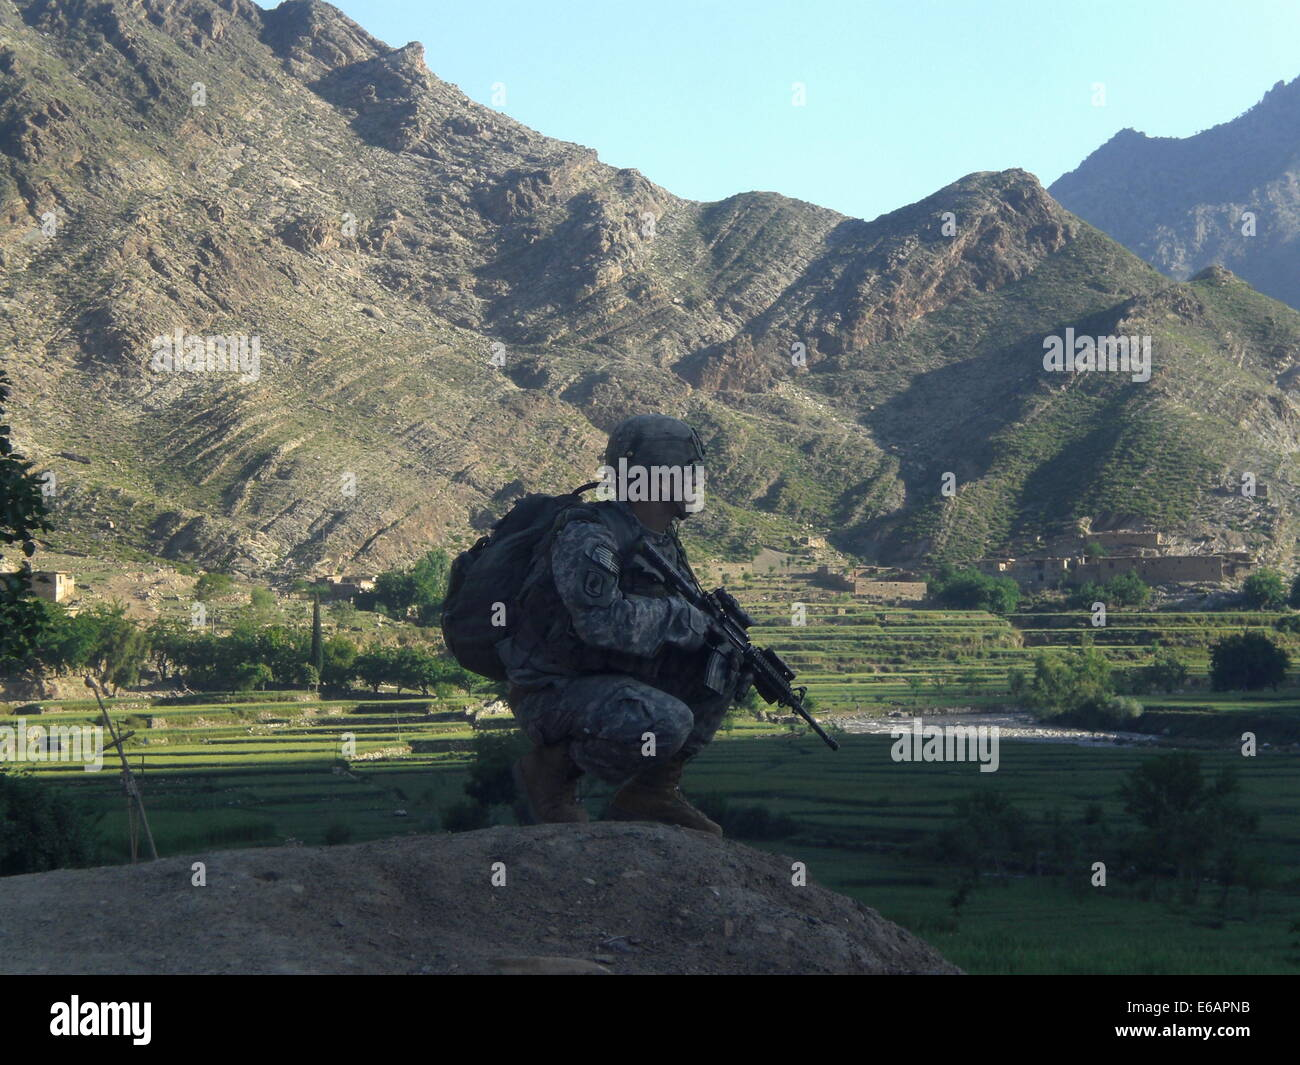 U.S. Army Cpl. Gunnar W. Zwilling provides security while on patrol outside Forward Operating Base Blessing in Kunar - Stock Image